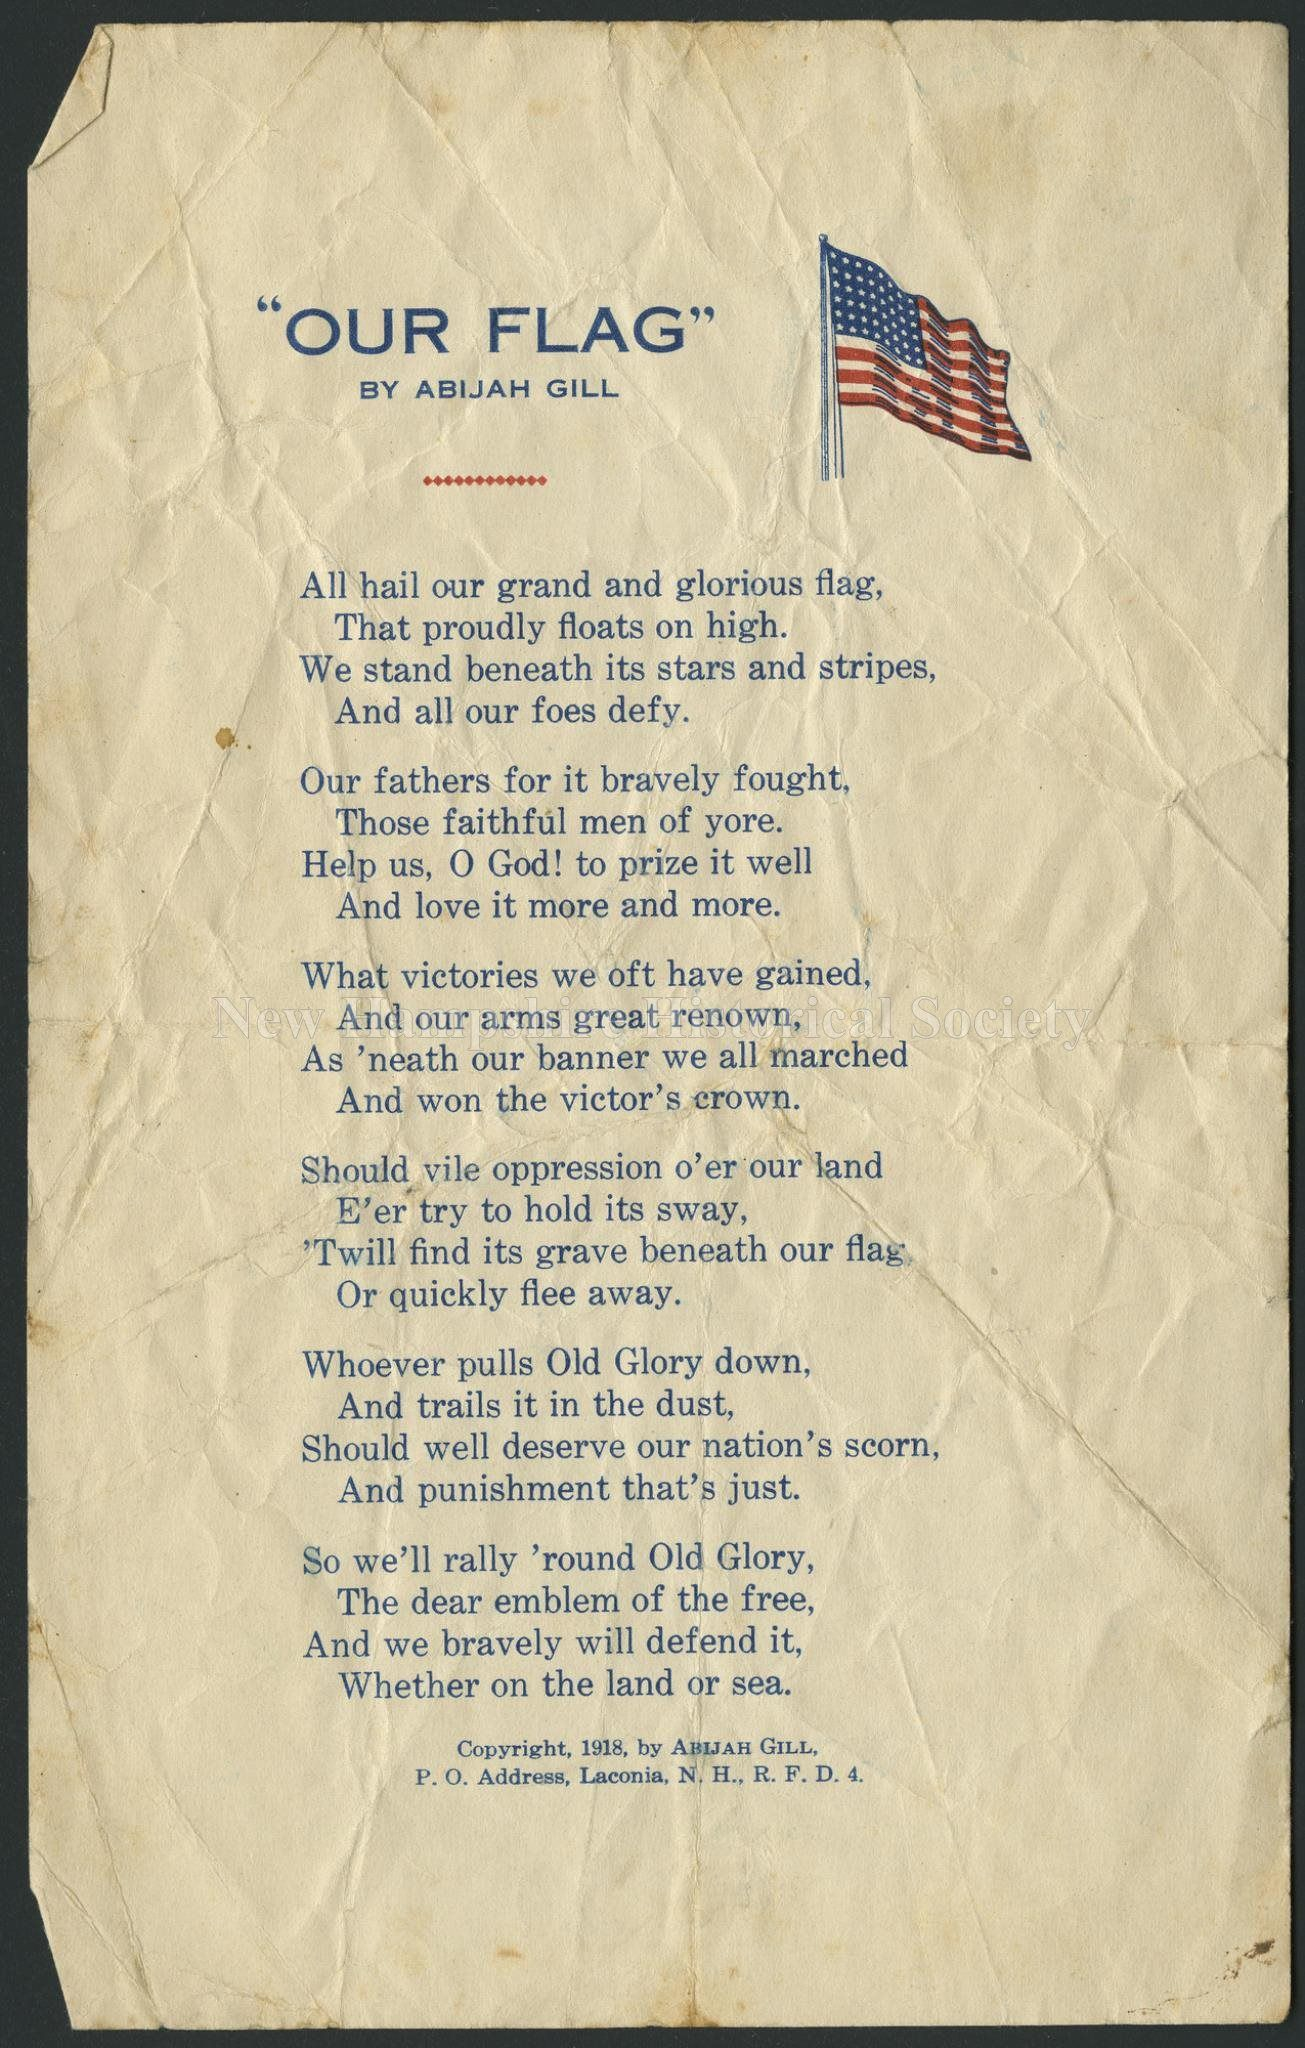 1918 Our Flag Poem By Abijah Gill Poems Historical Society Flag